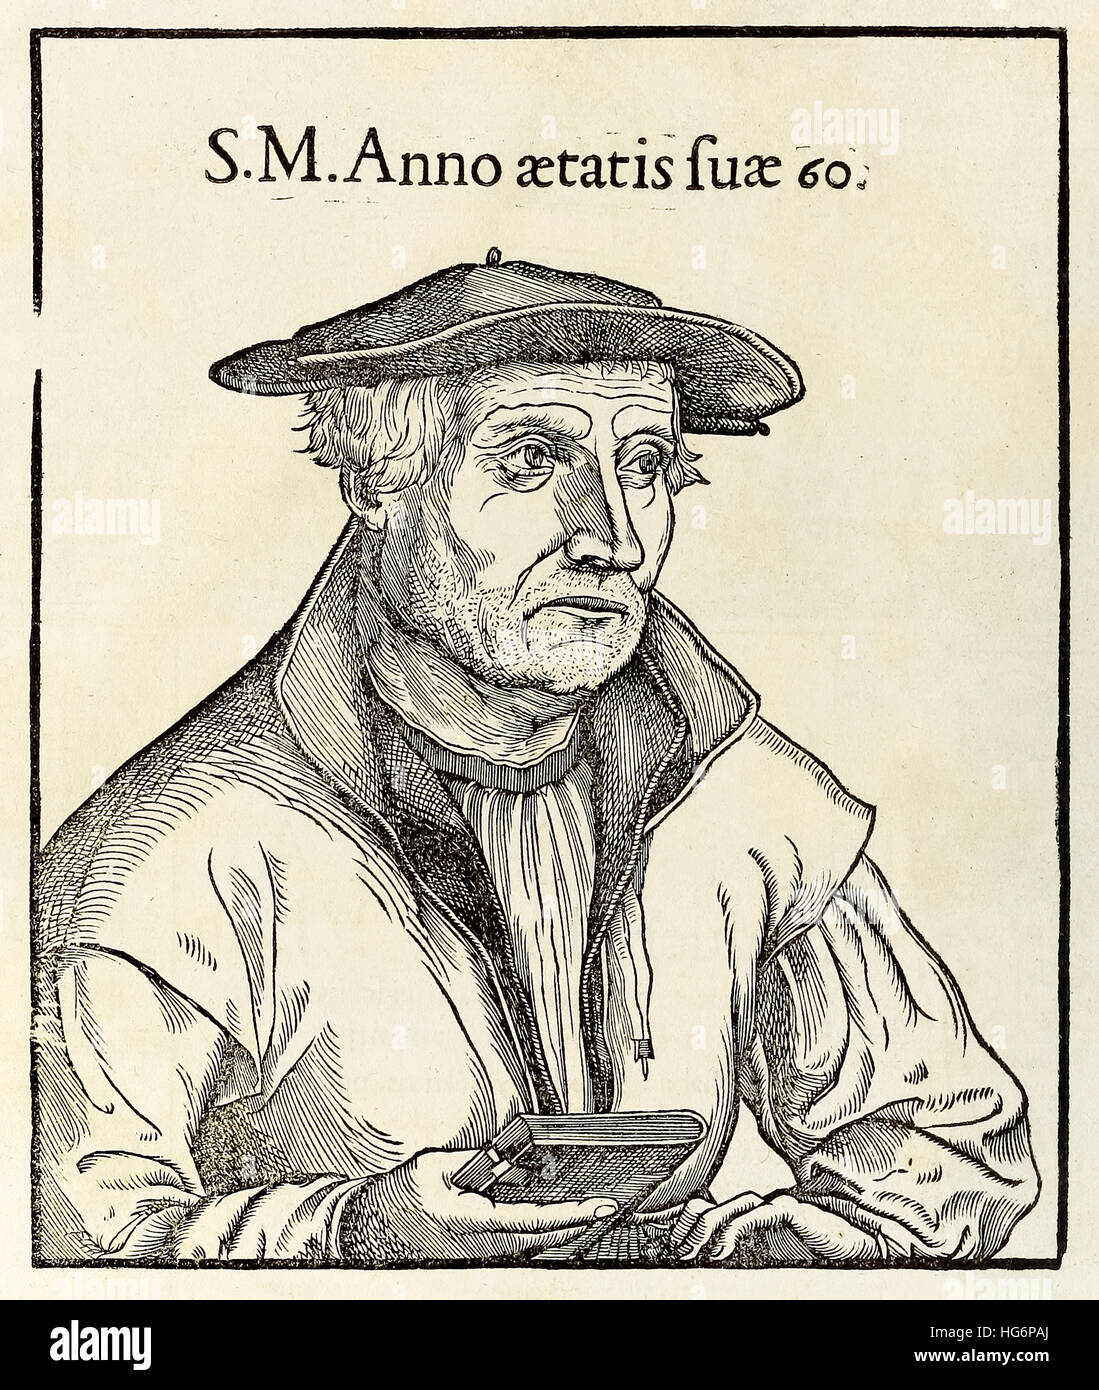 Woodcut portrait of Sebastian Munster (1488-1552) from a 1550 edition of his 'Cosmographia'. See description for - Stock Image